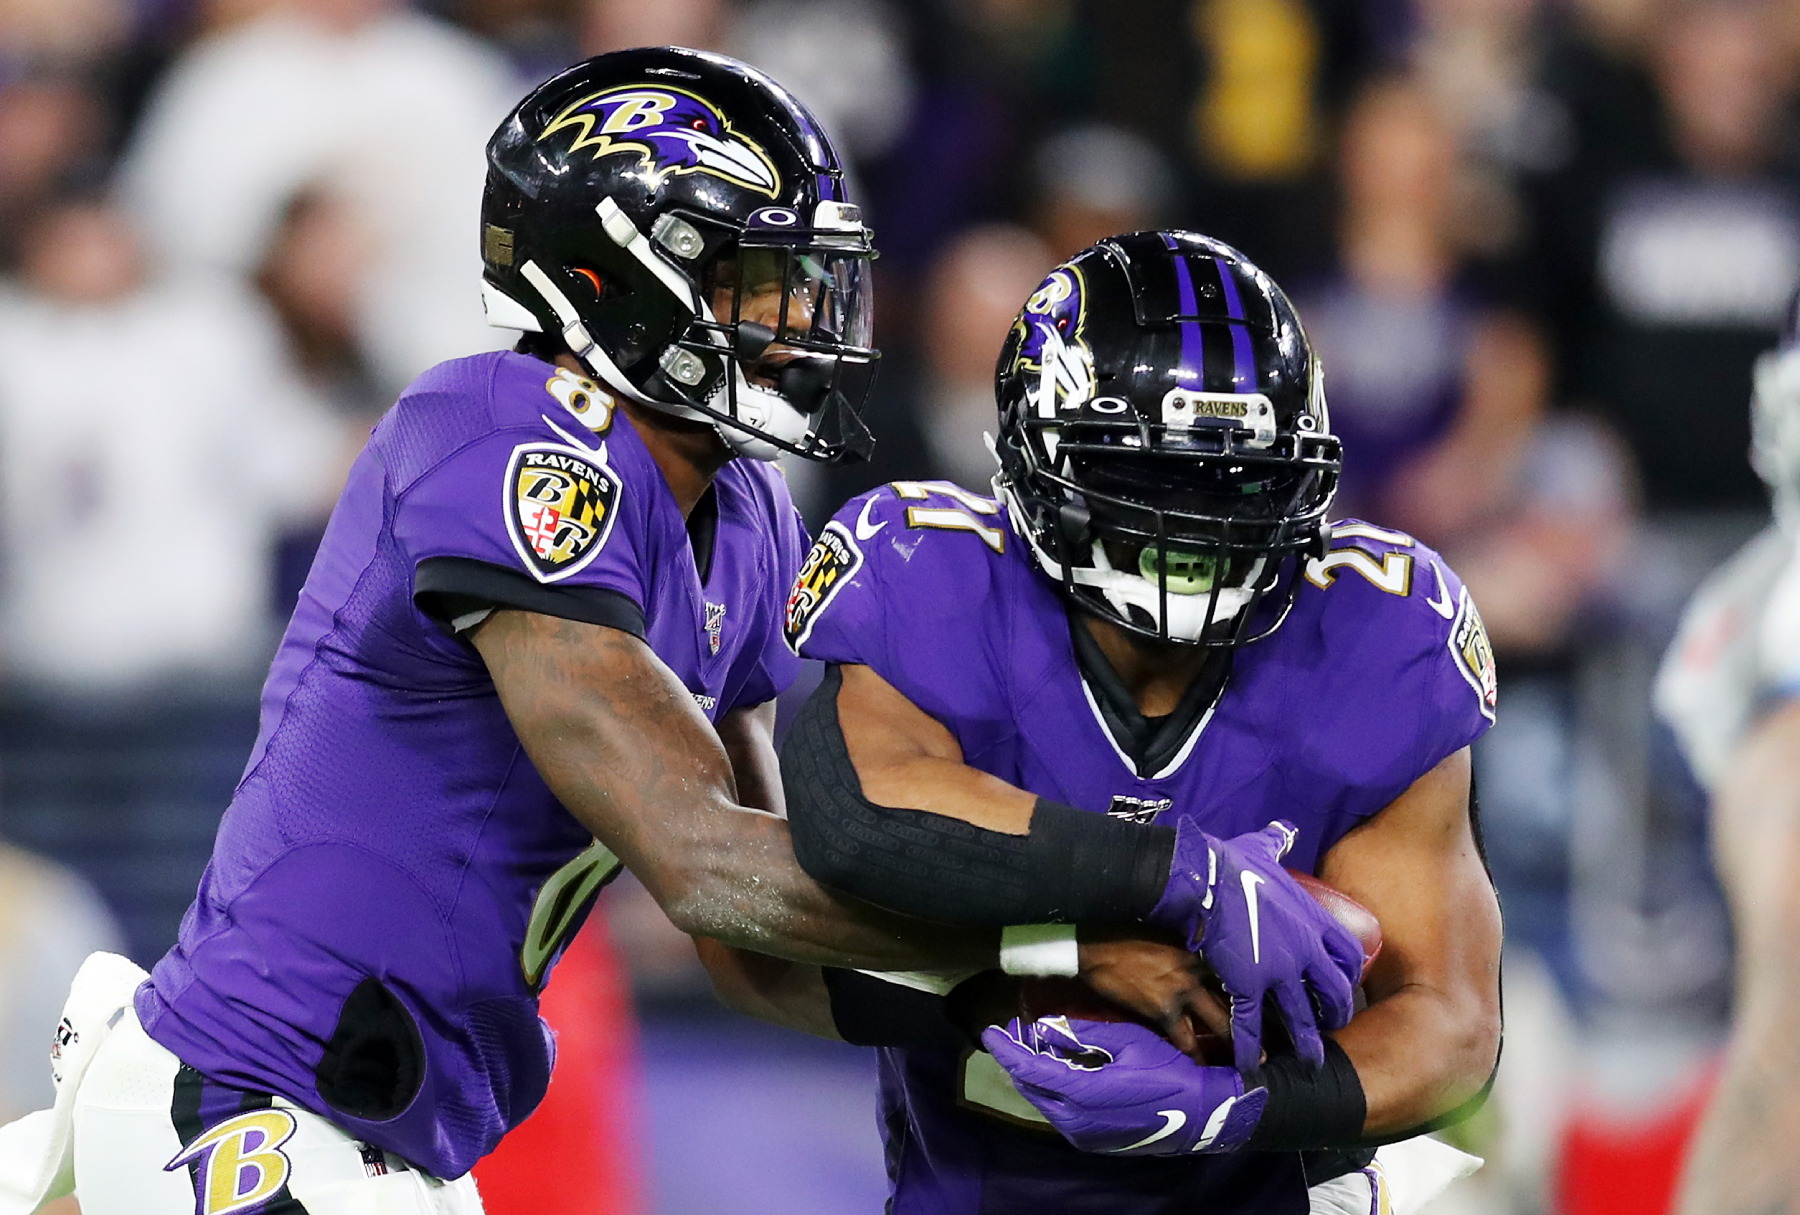 The Baltimore Ravens had one of the best offenses in football last season. They then added another top-rated Madden star this offseason.